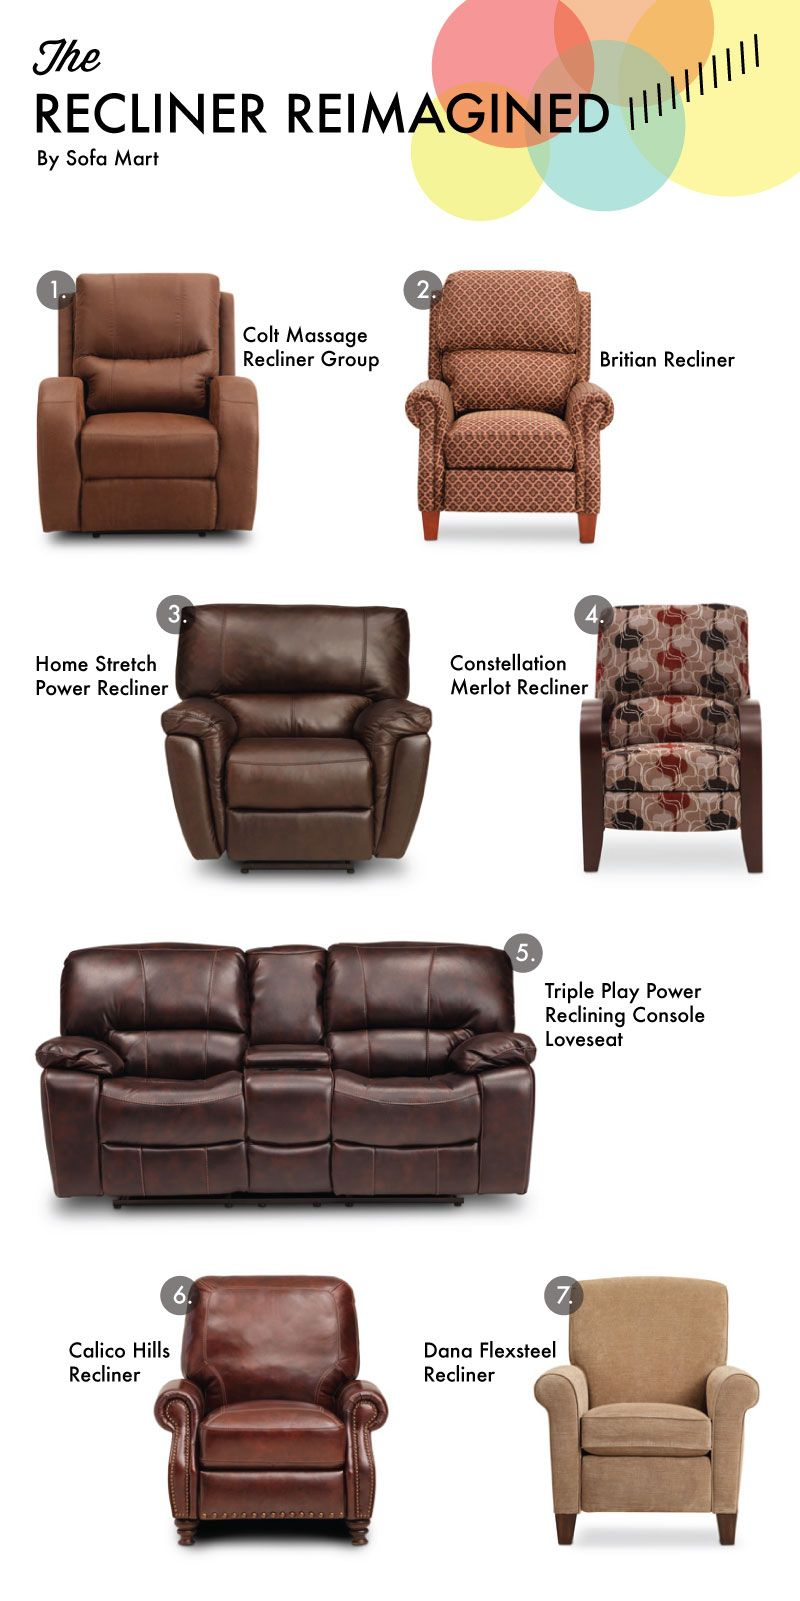 Sofa Sleeper Recliner Reimagined for Father us Day Sofa Mart for The